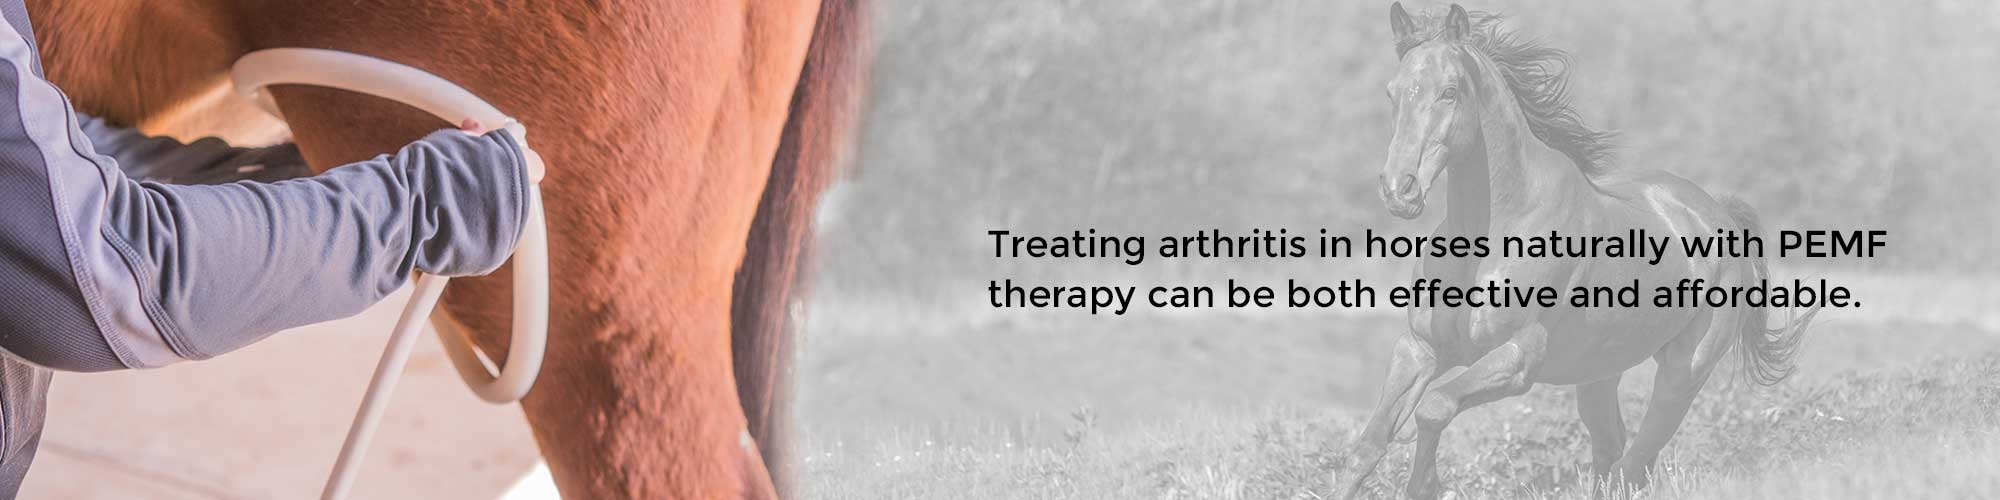 Treating arthritis in horses naturally with PEMF therapy can be both effective and affordable.